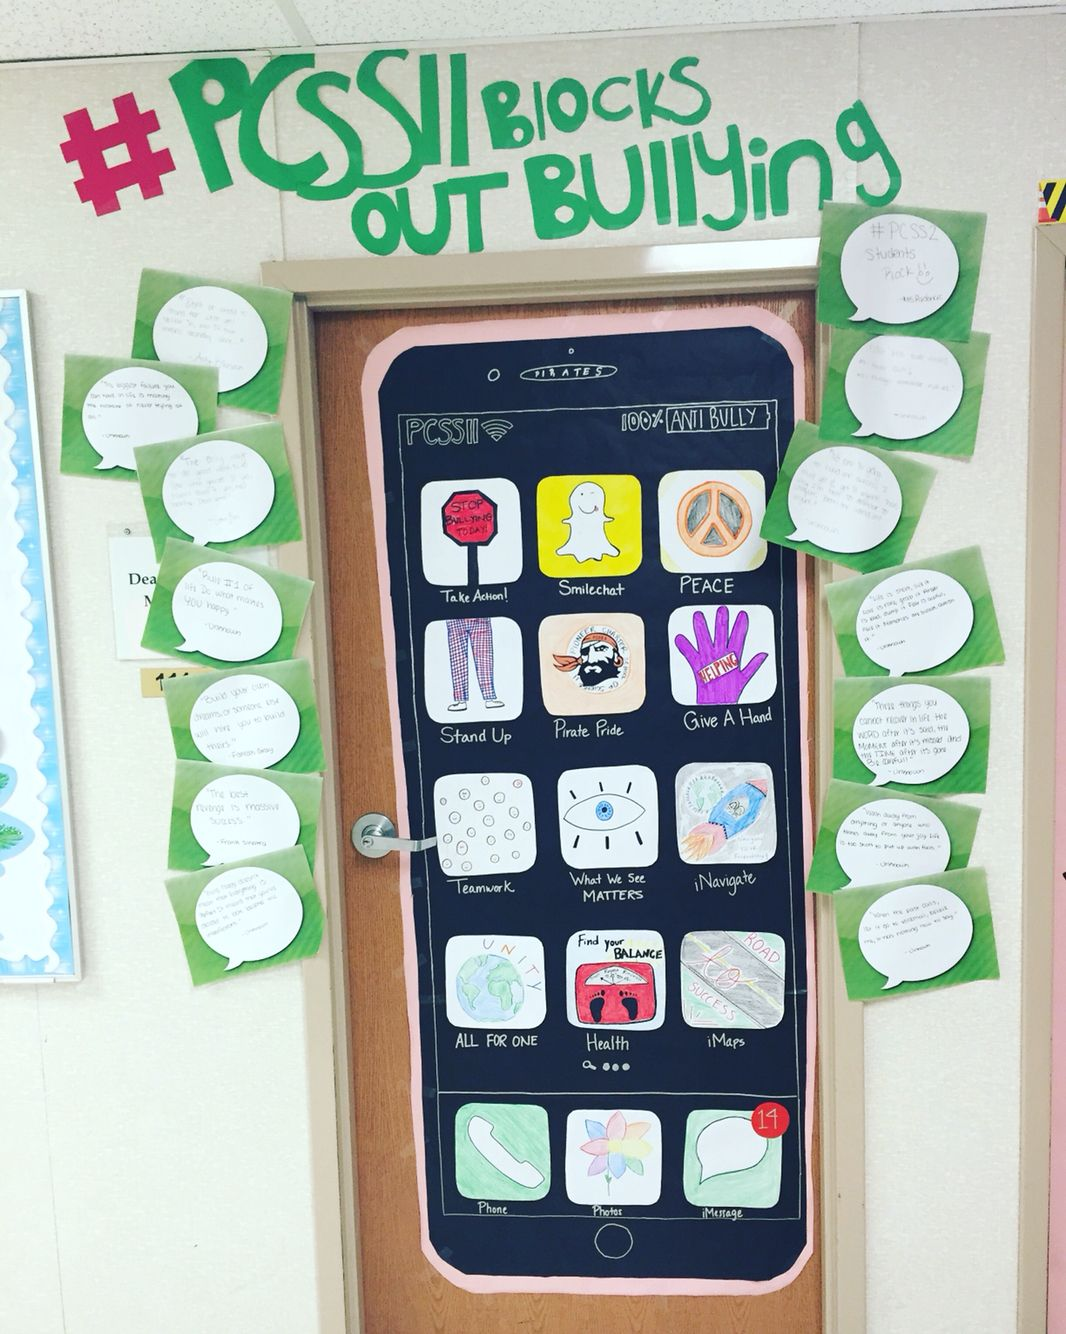 Anti-bullying door decoration | Work related pins ...